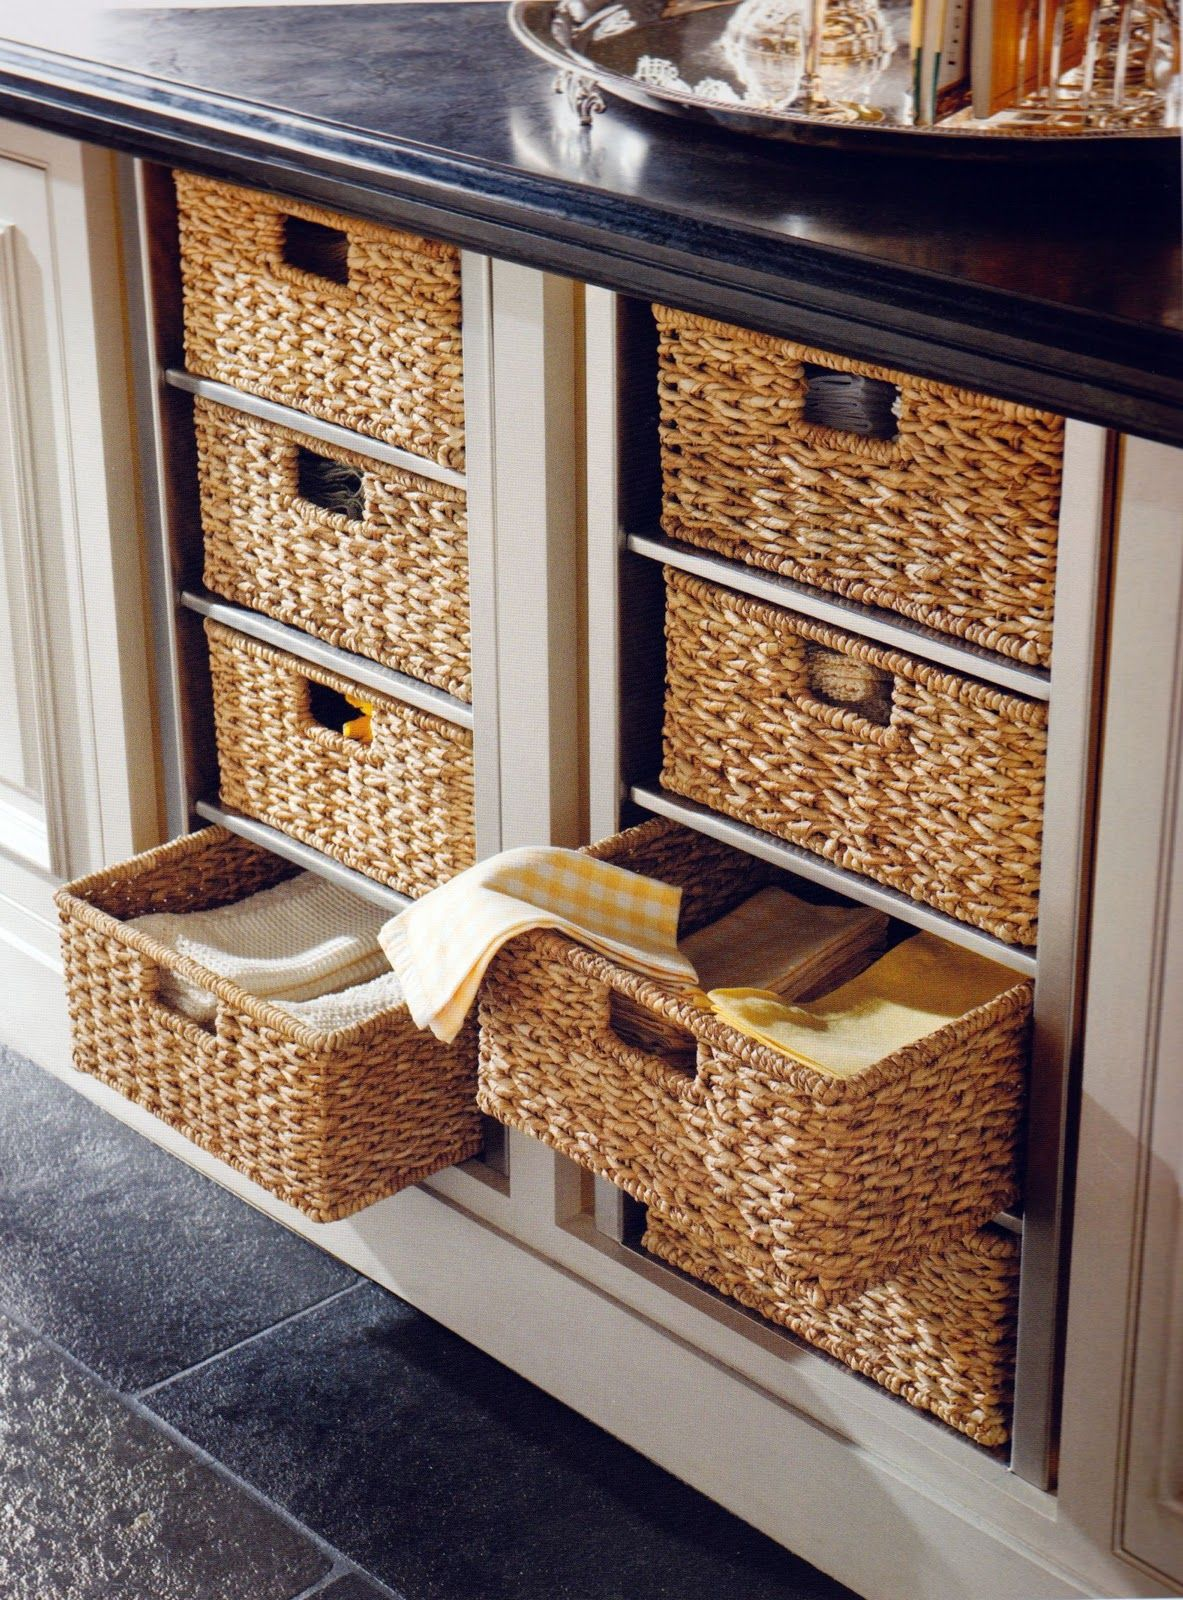 kitchen basket table and chairs sets drawers for where the dishwasher used to be good idea id rather wash dishes by hand than use a